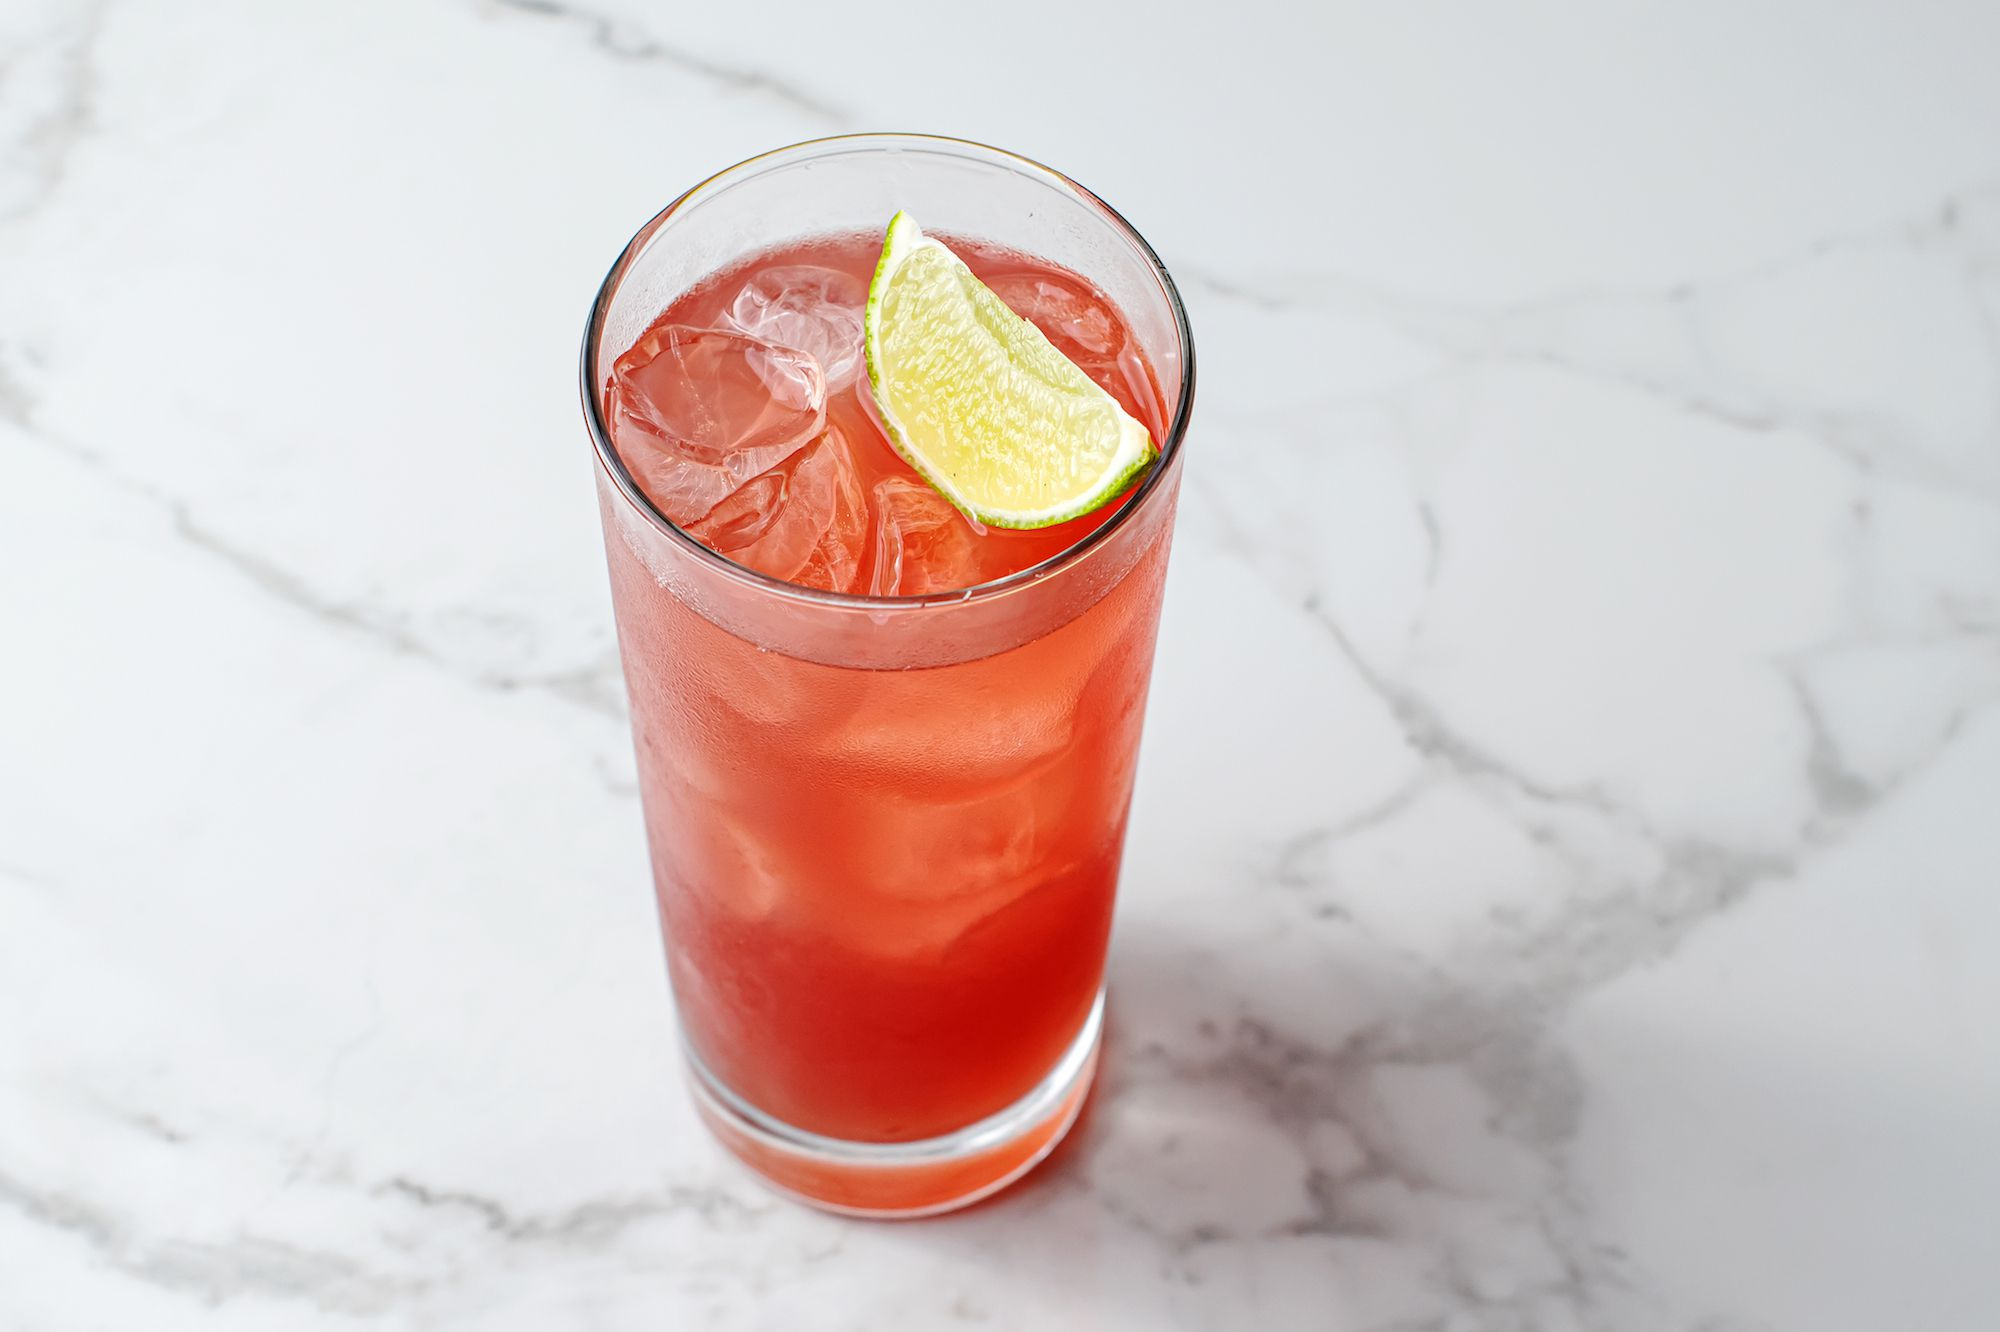 Madras cocktail garnished with a lime wedge